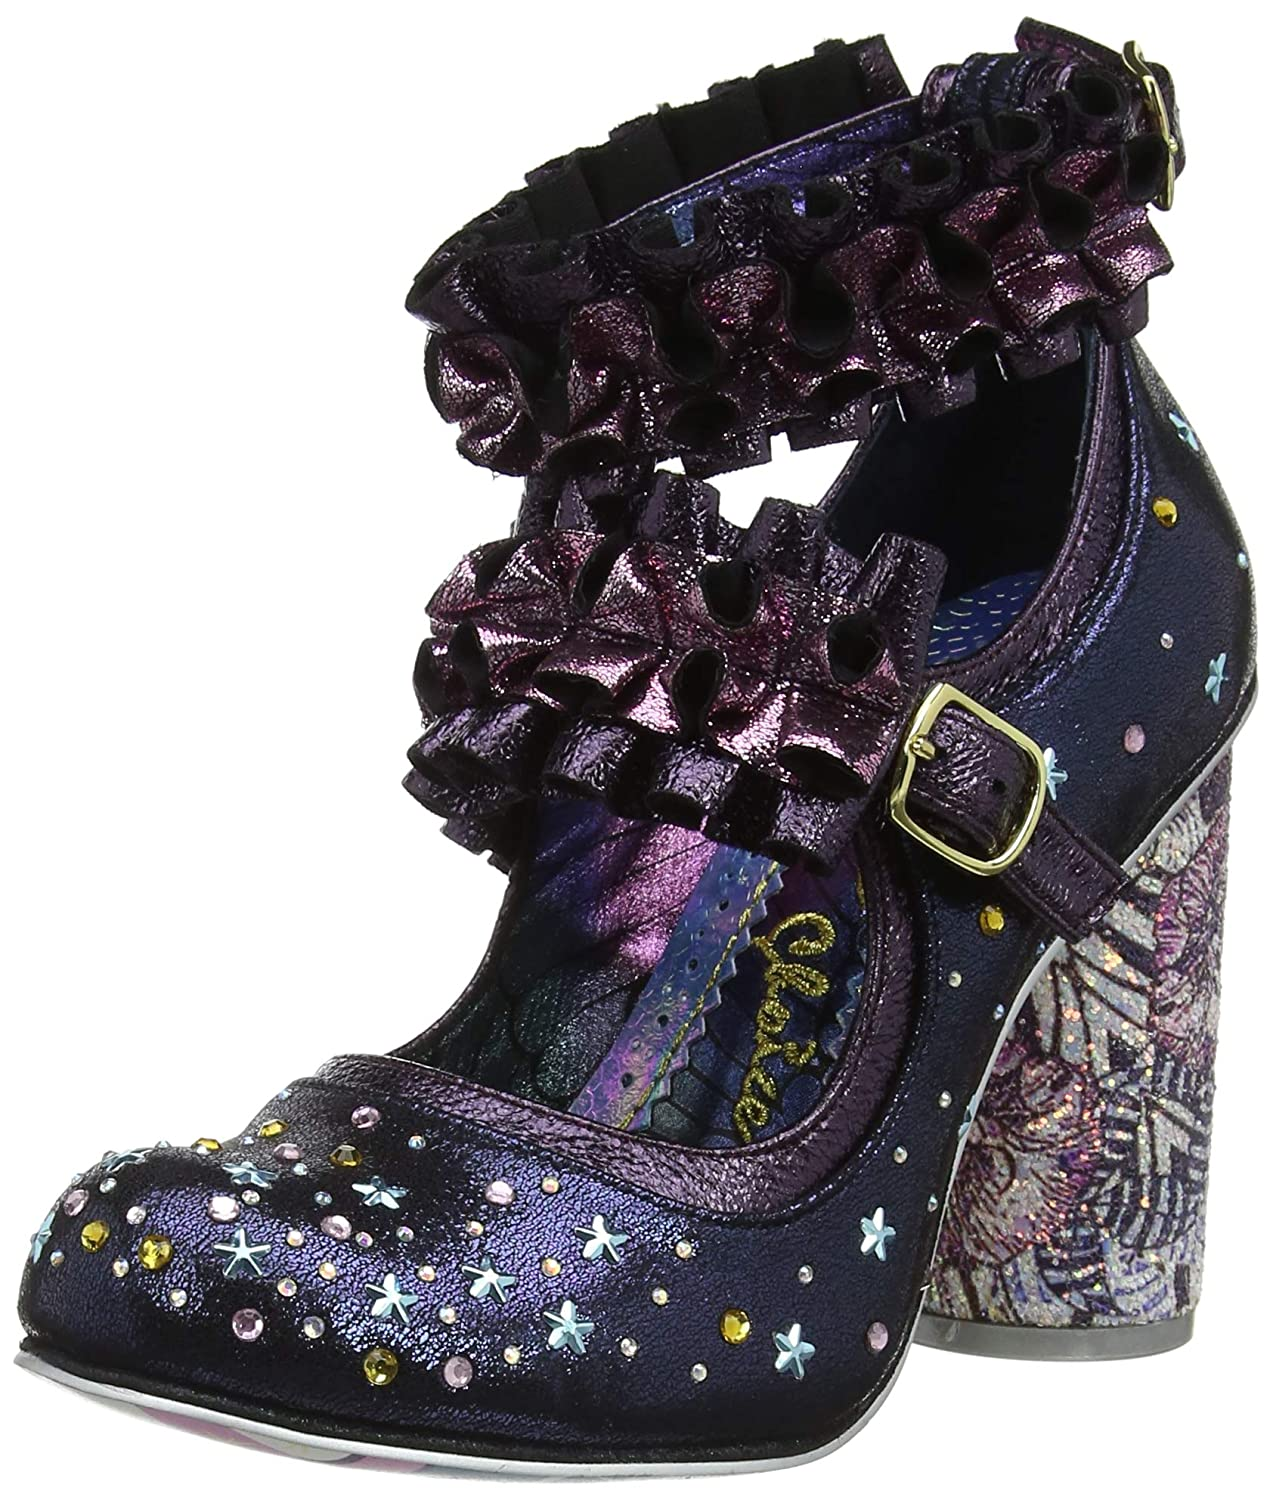 TALLA 38 EU. Irregular Choice New Rules, Zapatos con Tacon y Correa de Tobillo para Mujer